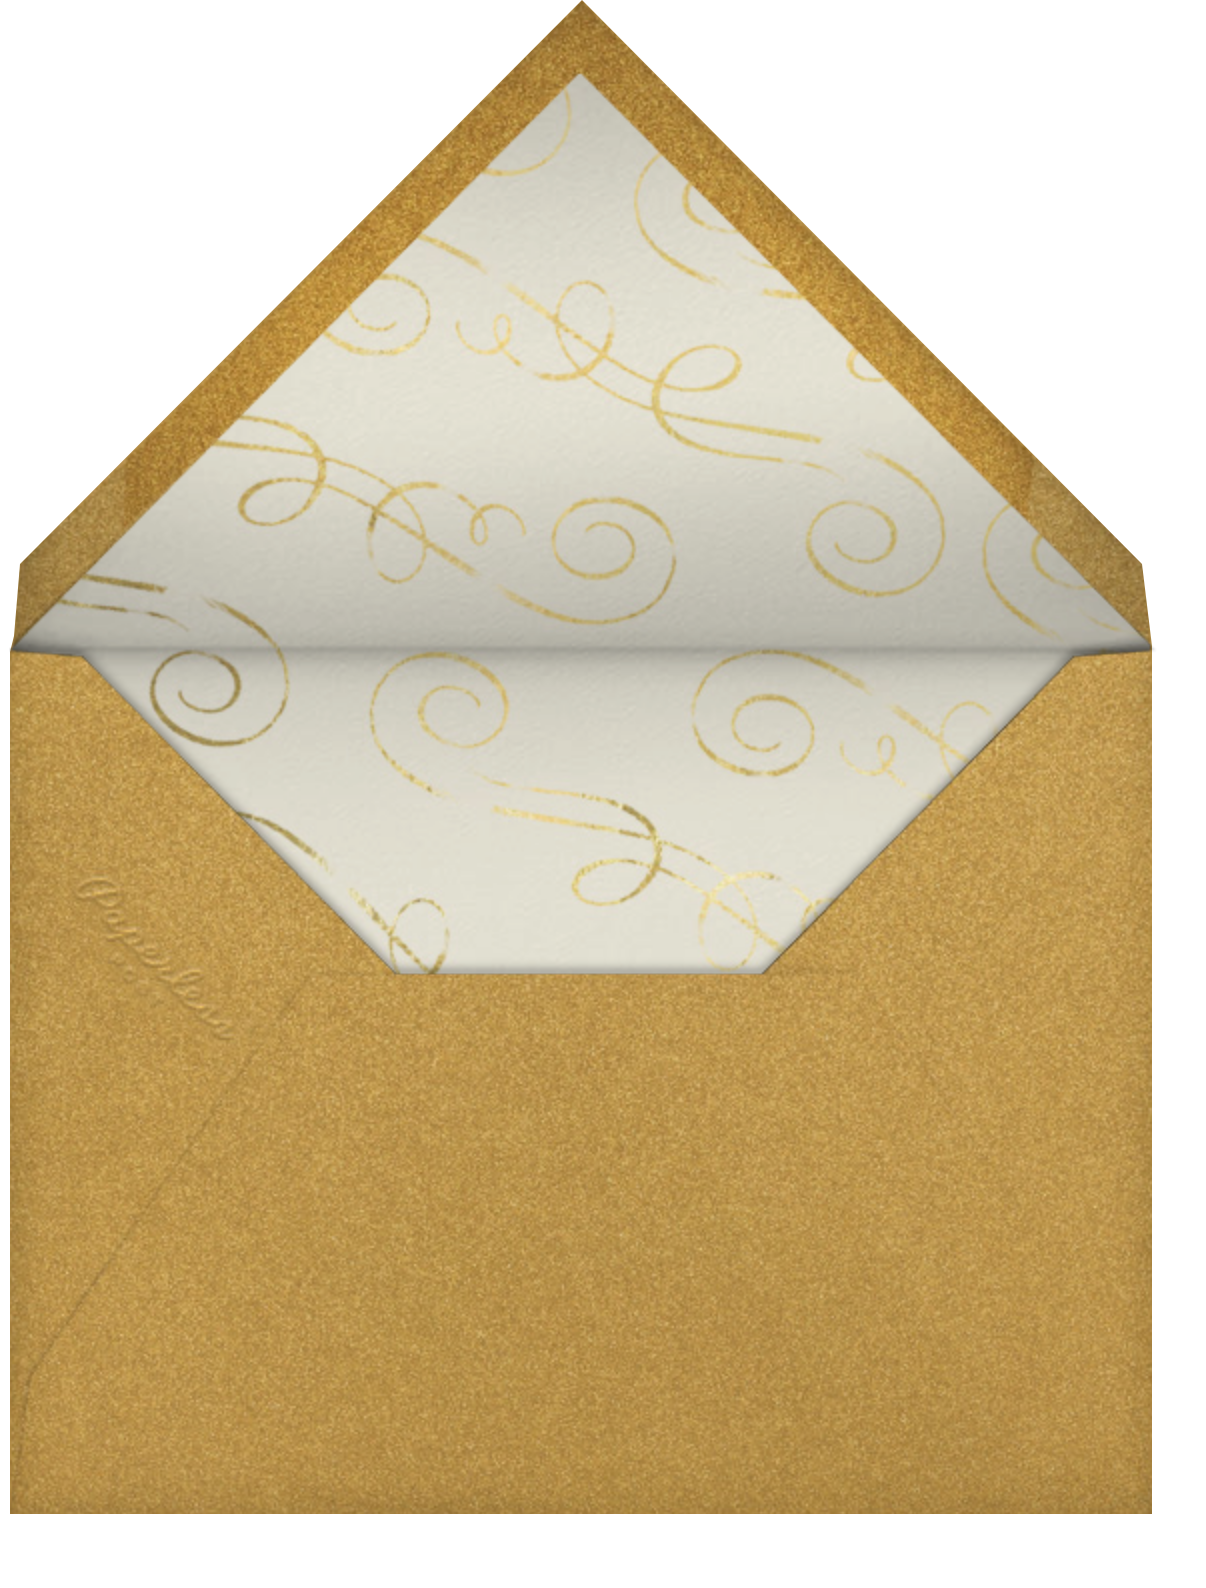 Snapshot Gold - Square - Paperless Post - Adult birthday - envelope back